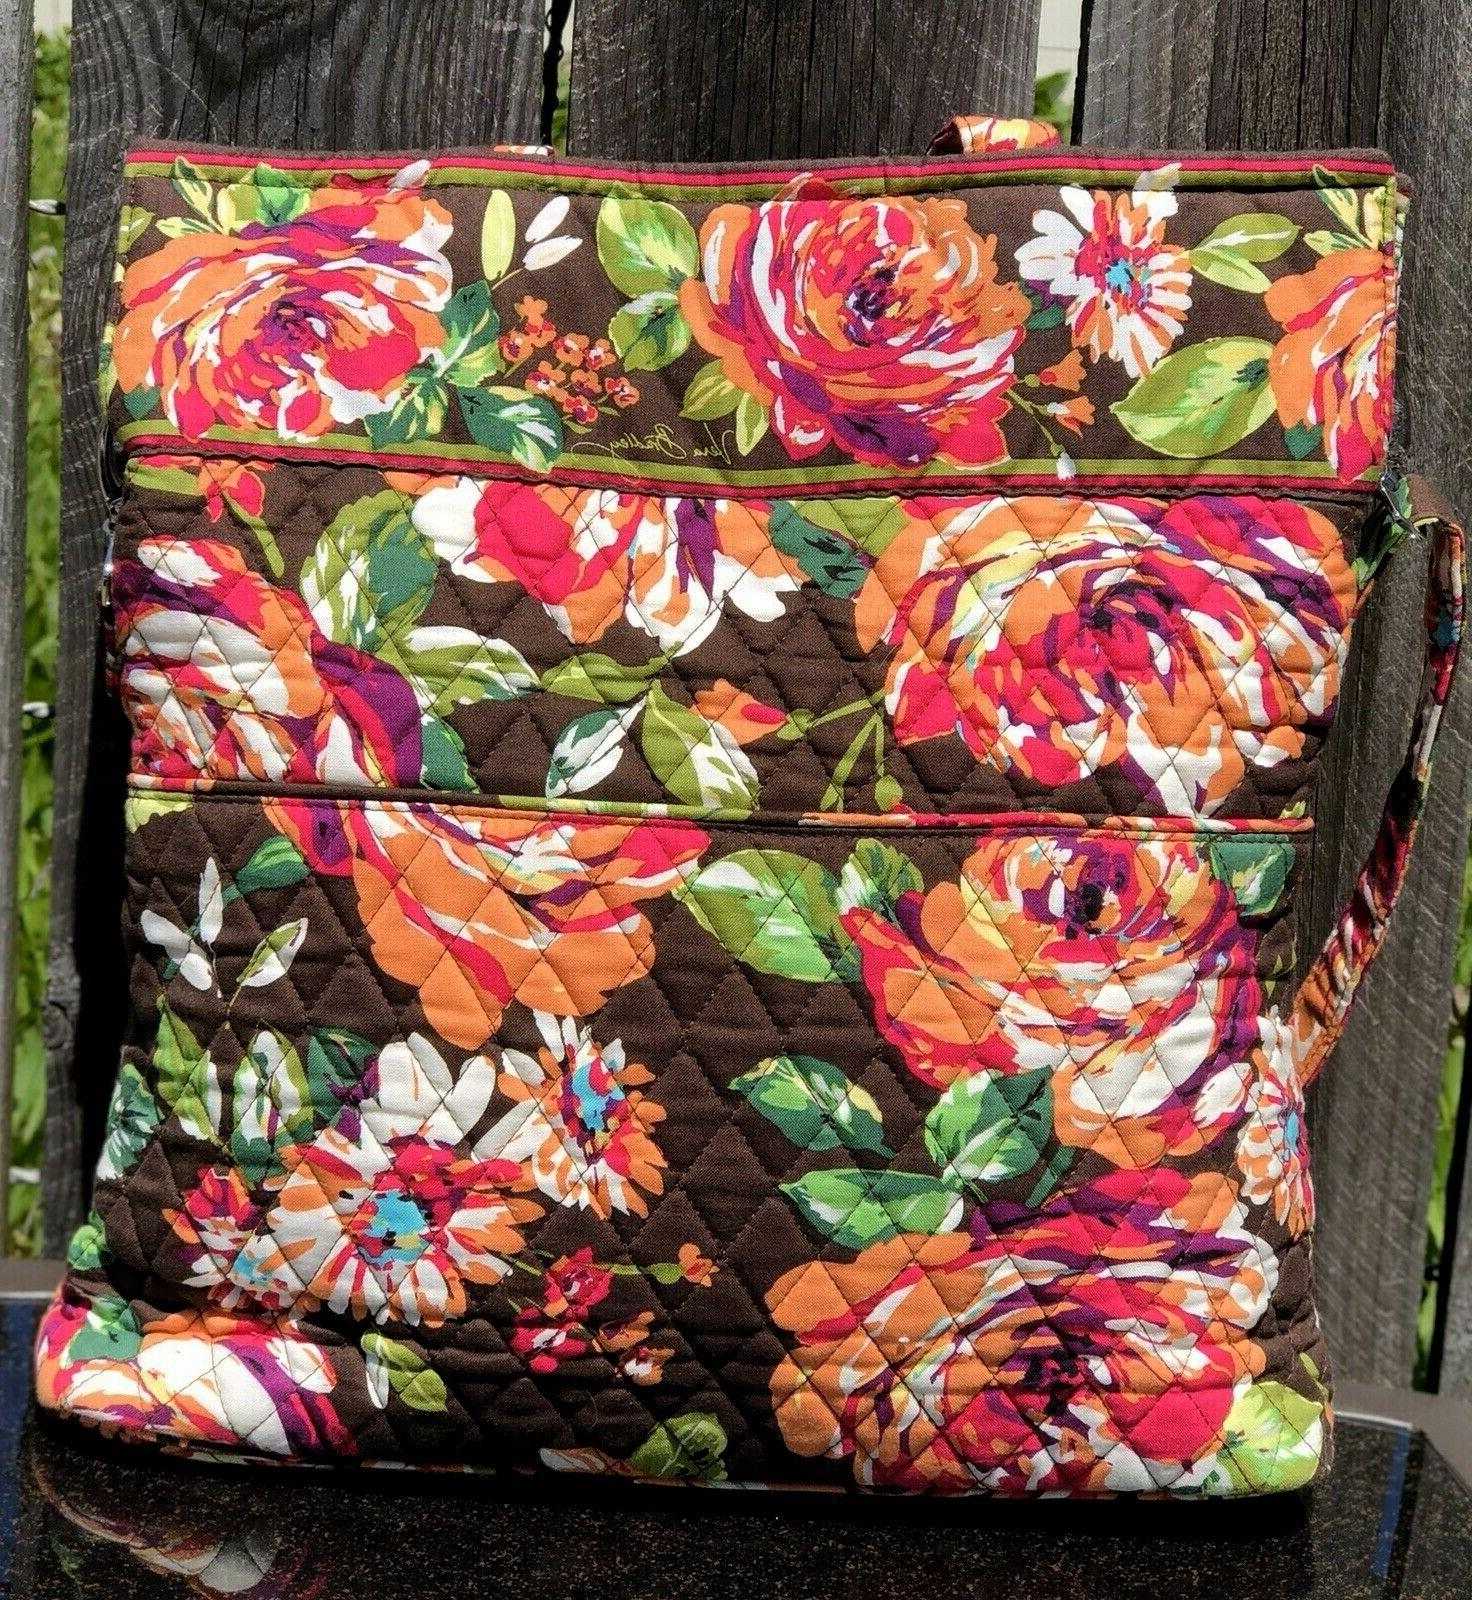 Vera Bradley English Convertible 15 x 14 x 3.5, 9.5 NWT